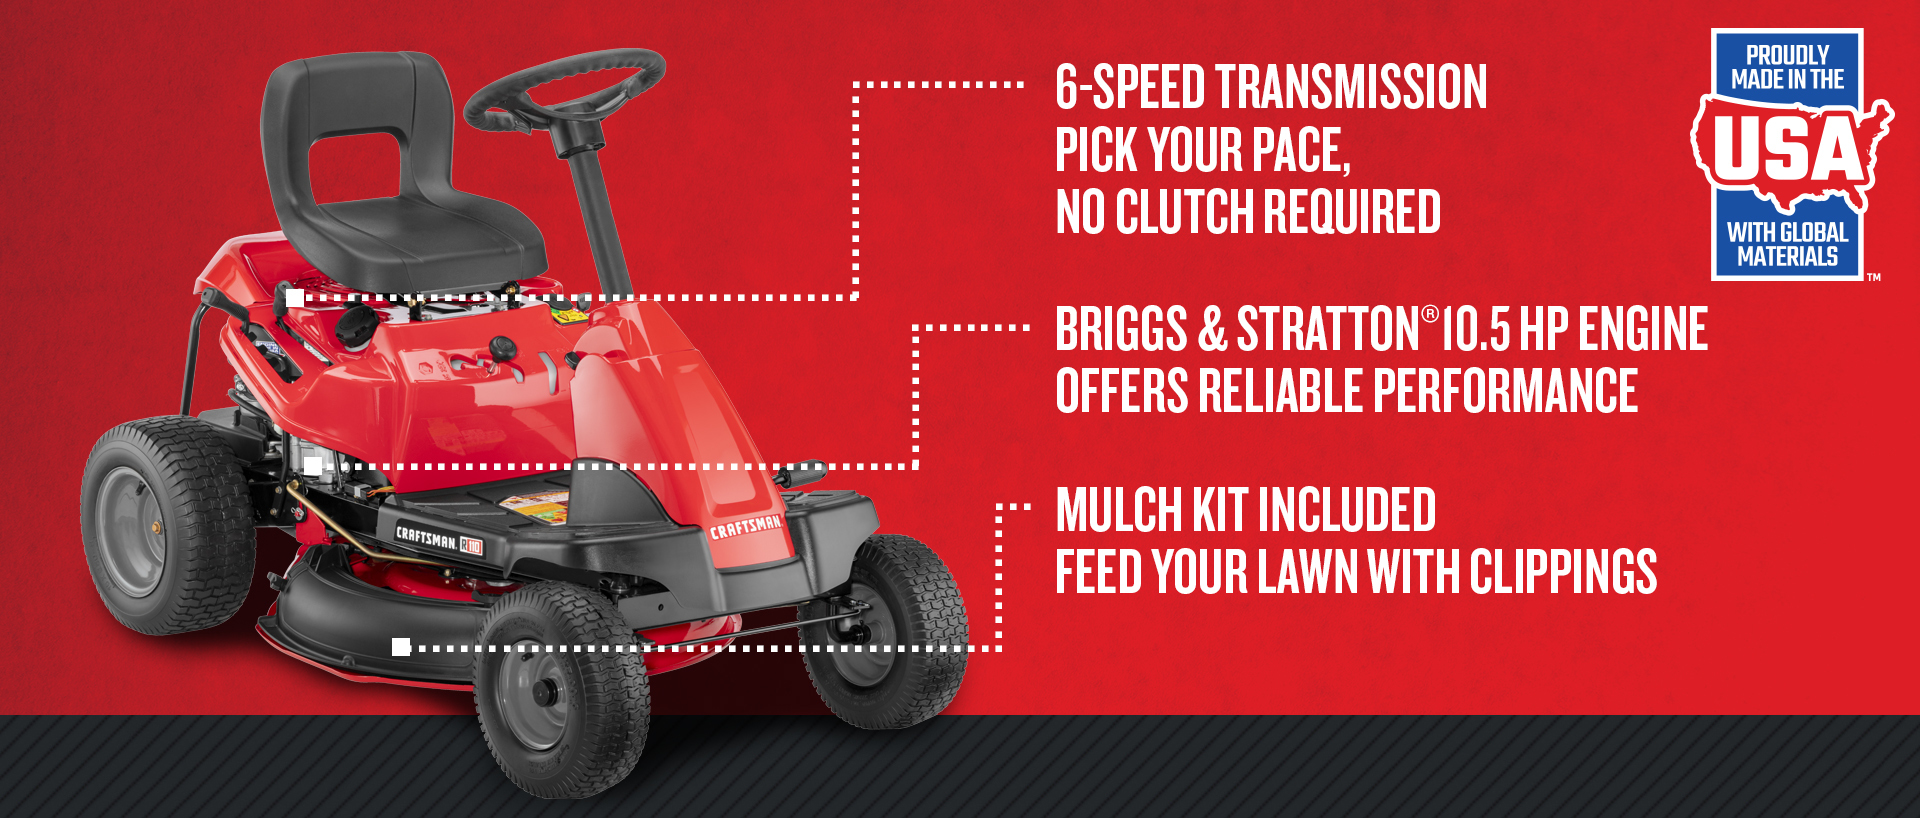 CRAFTSMAN R110 10 5-HP Manual/Gear 30-in Riding Lawn Mower